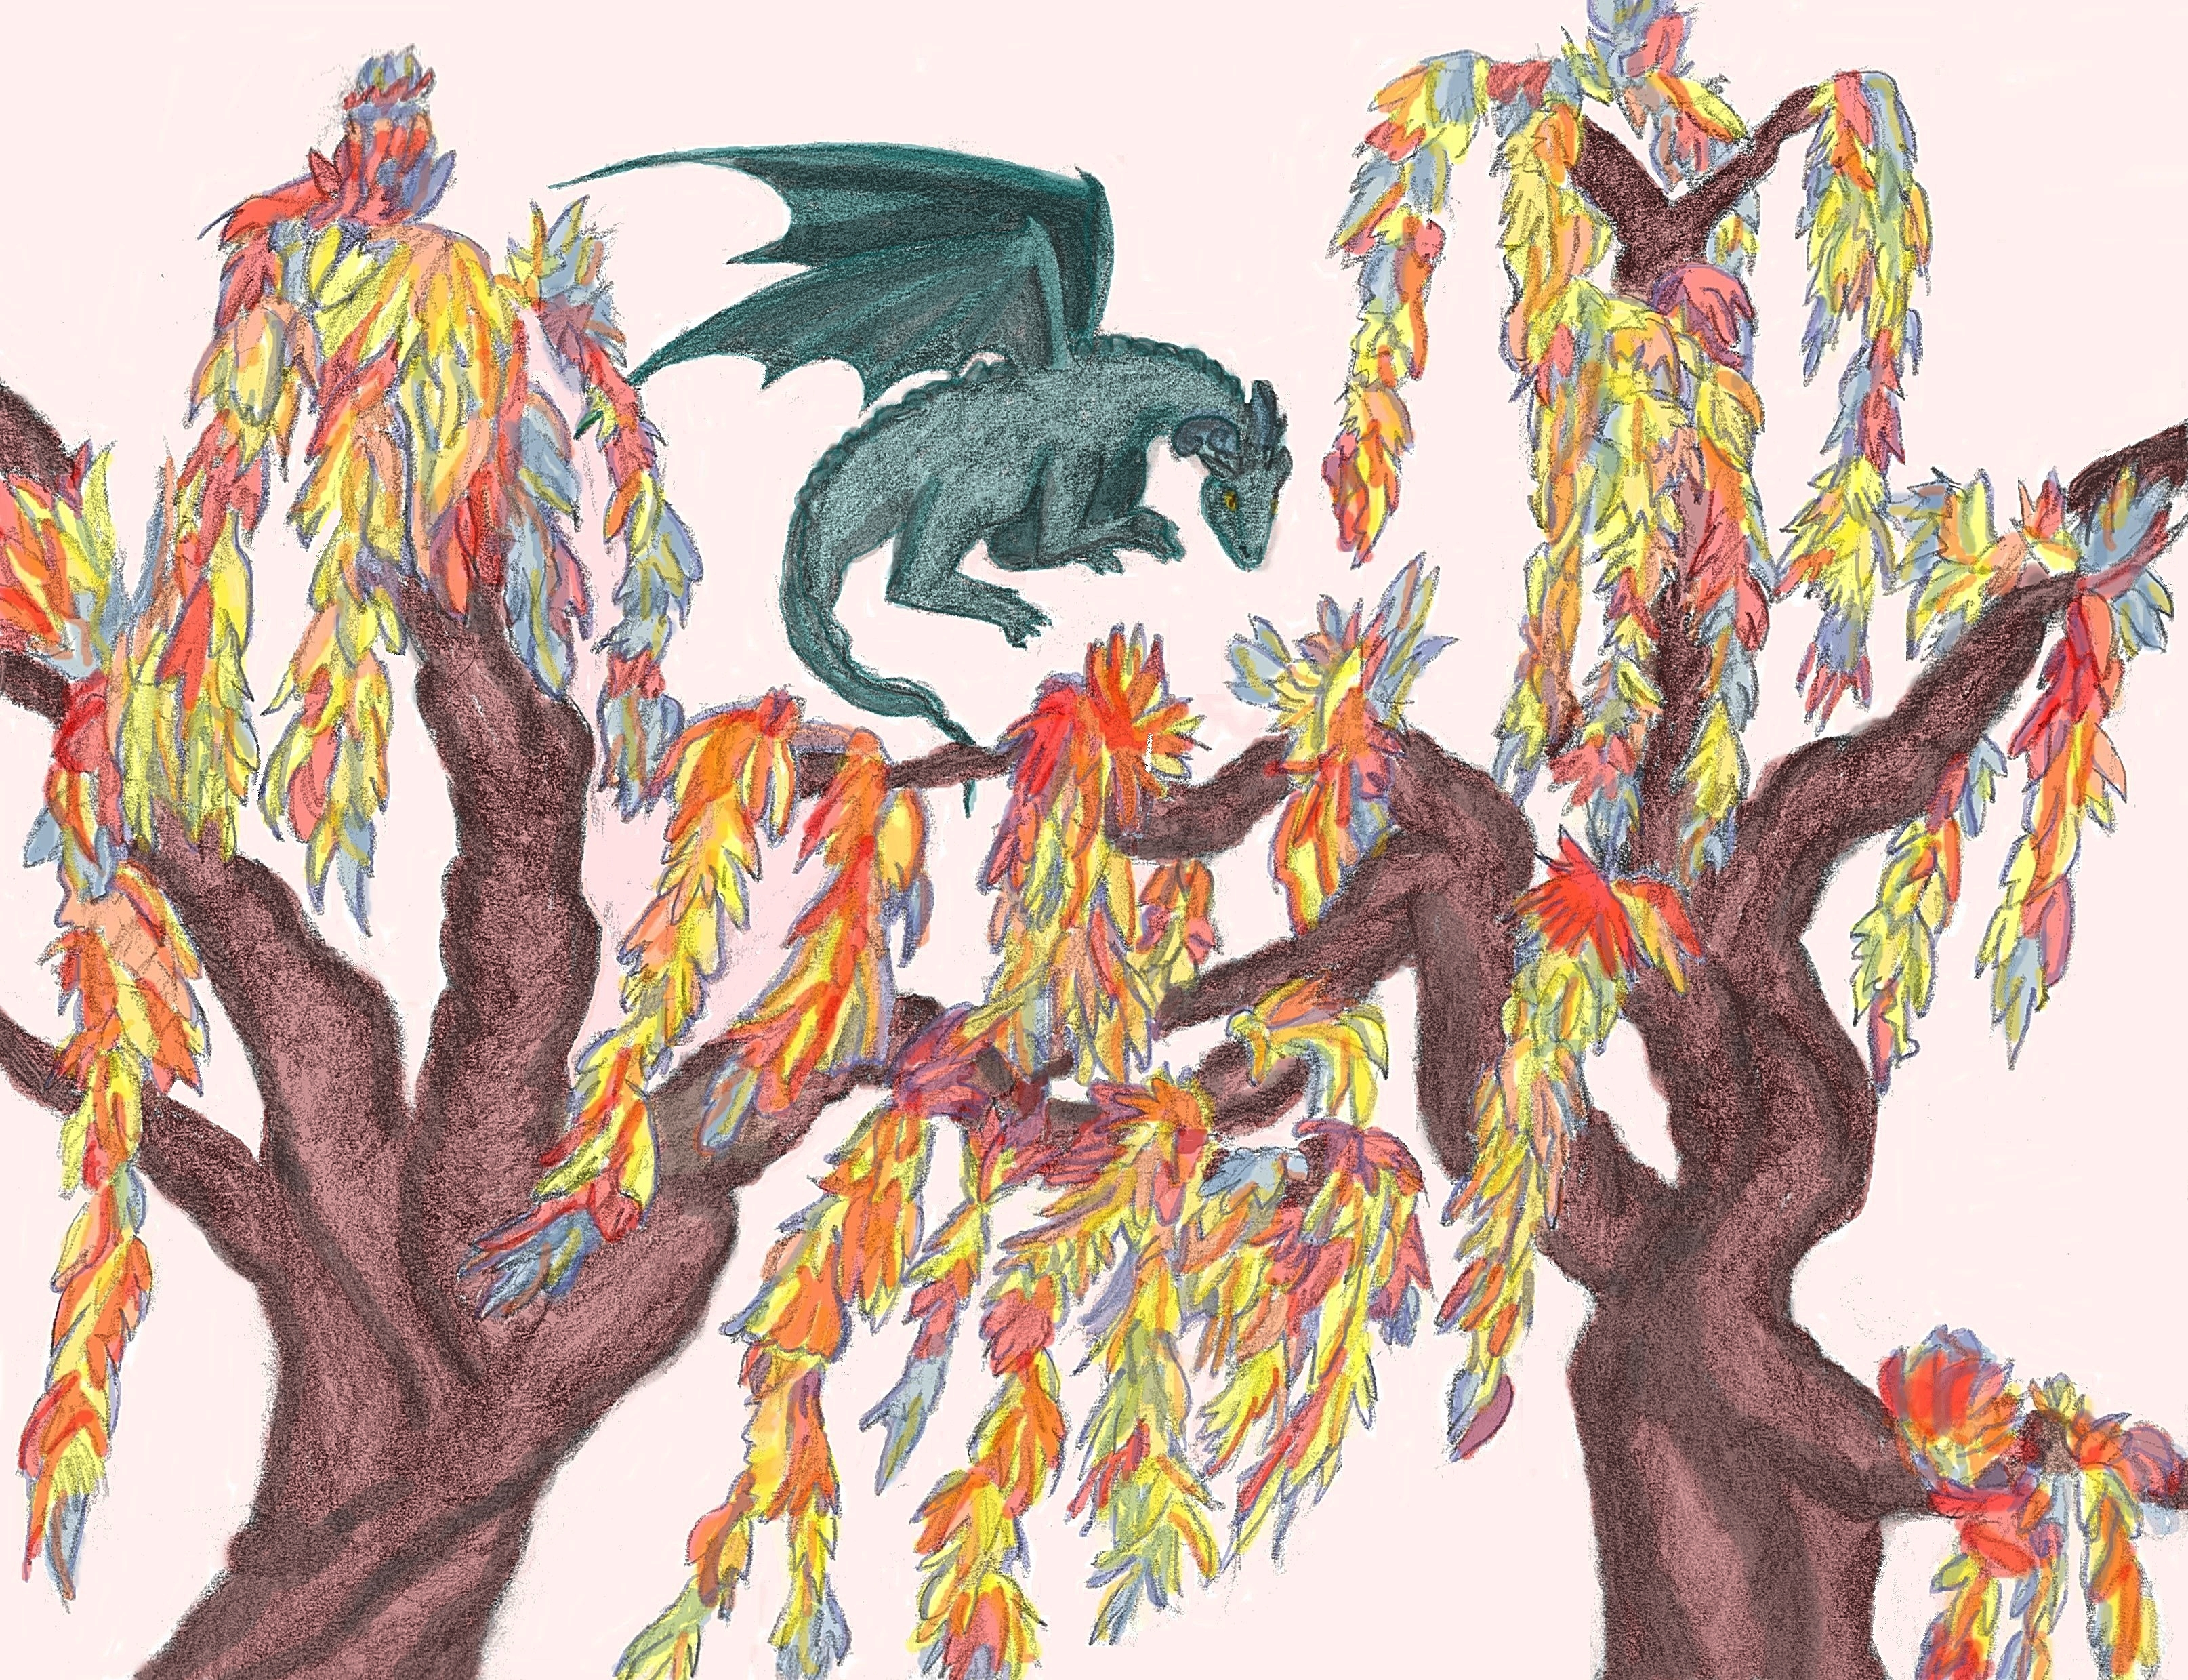 18. Dragon in Extrordinarium color.0 amended background